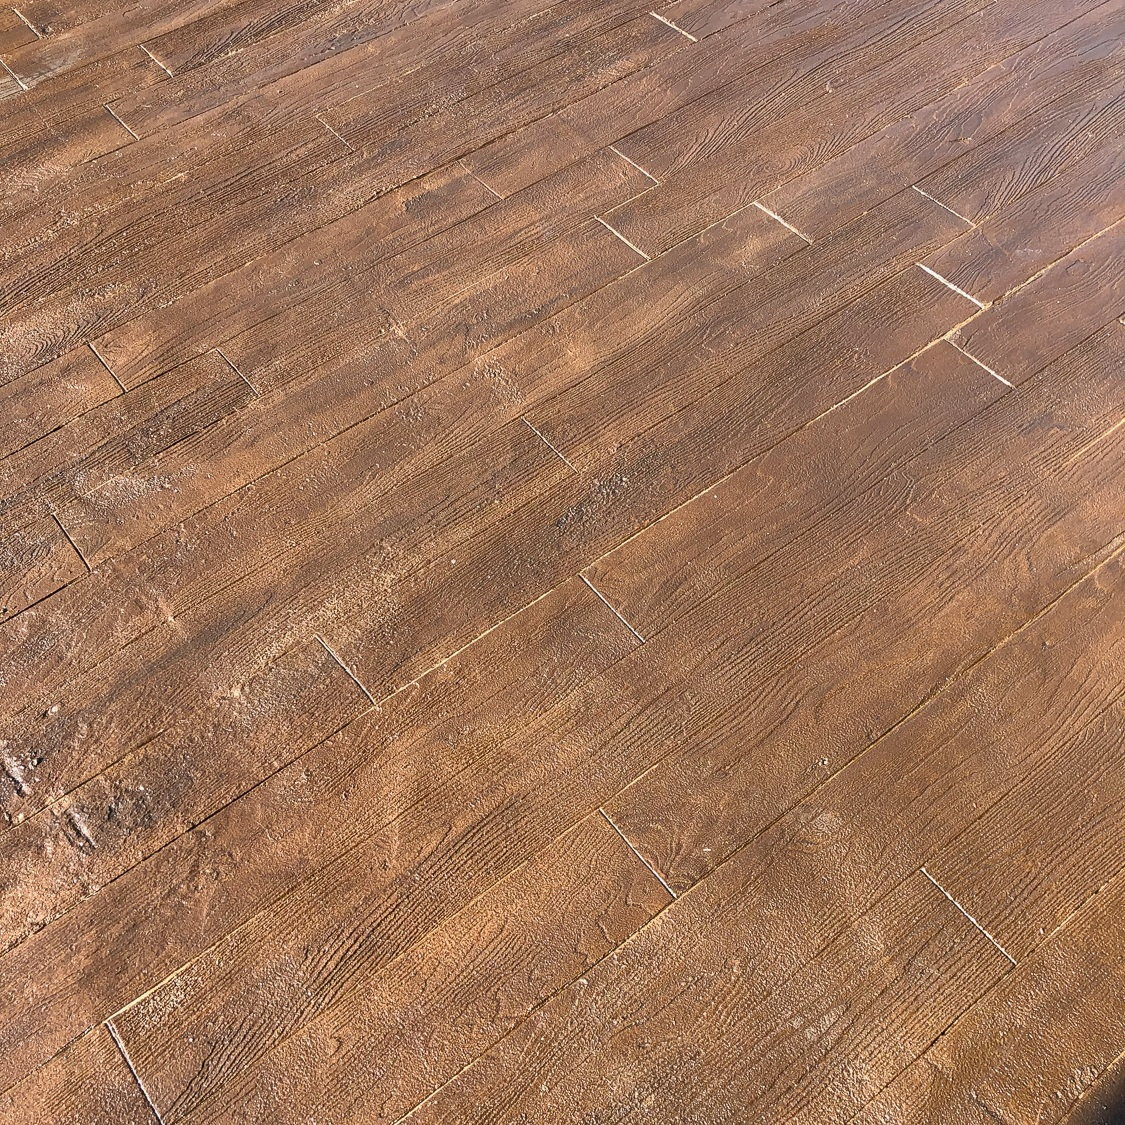 - Wet Weather WoesWe had an unusually wet Spring when this deck overlay was done.